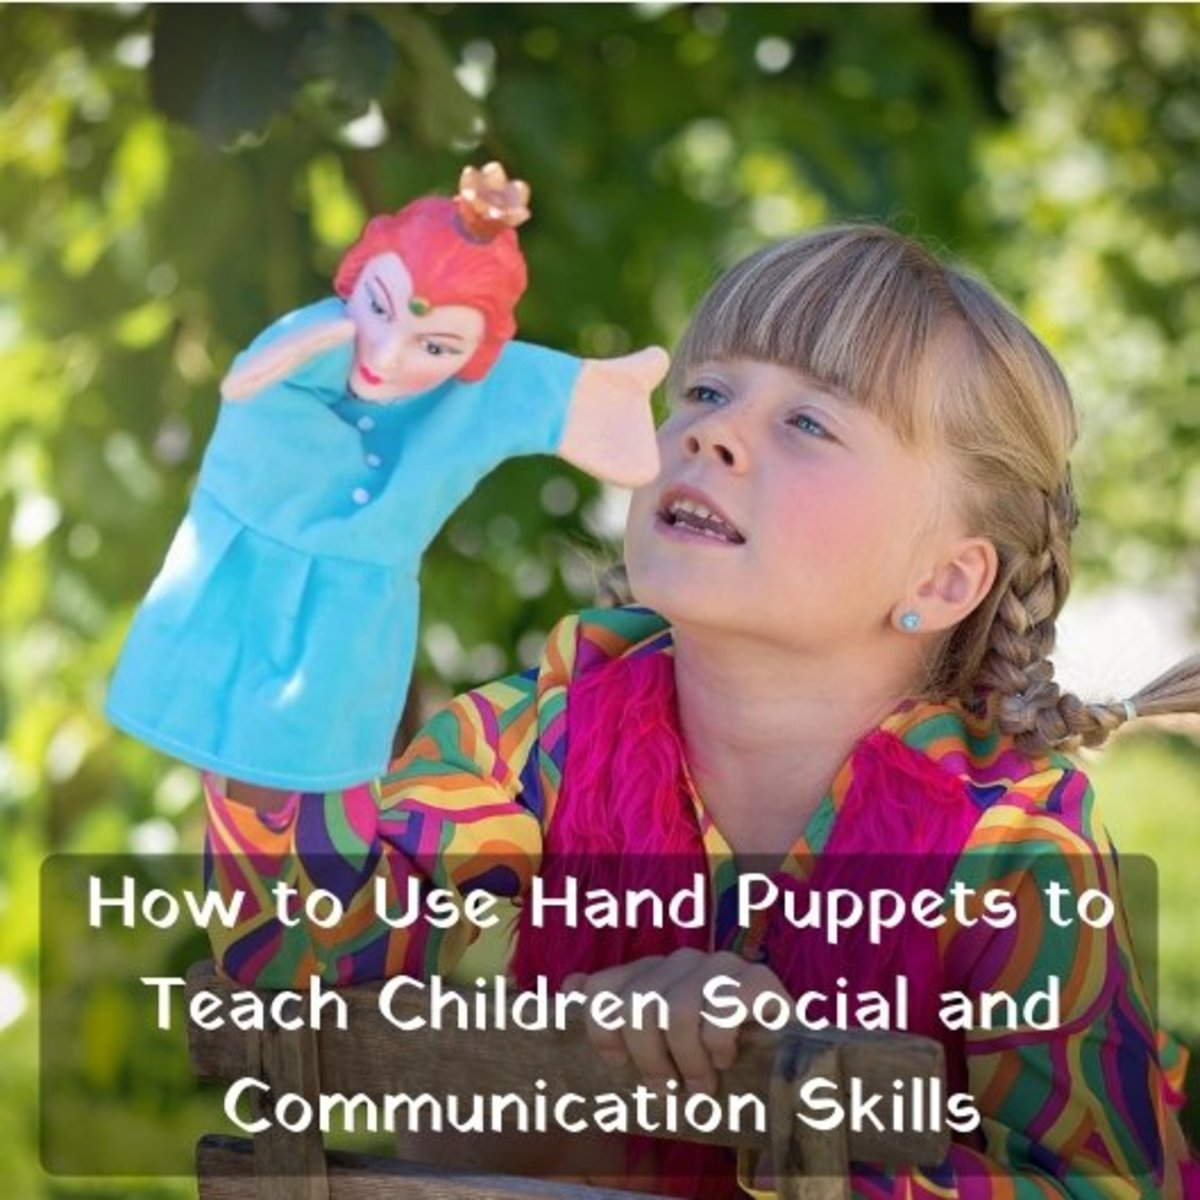 Puppets are engaging toys that can help support oral language skills and communication, social/emotional development, and help children learn and understand the world around them through safe, imaginative play.